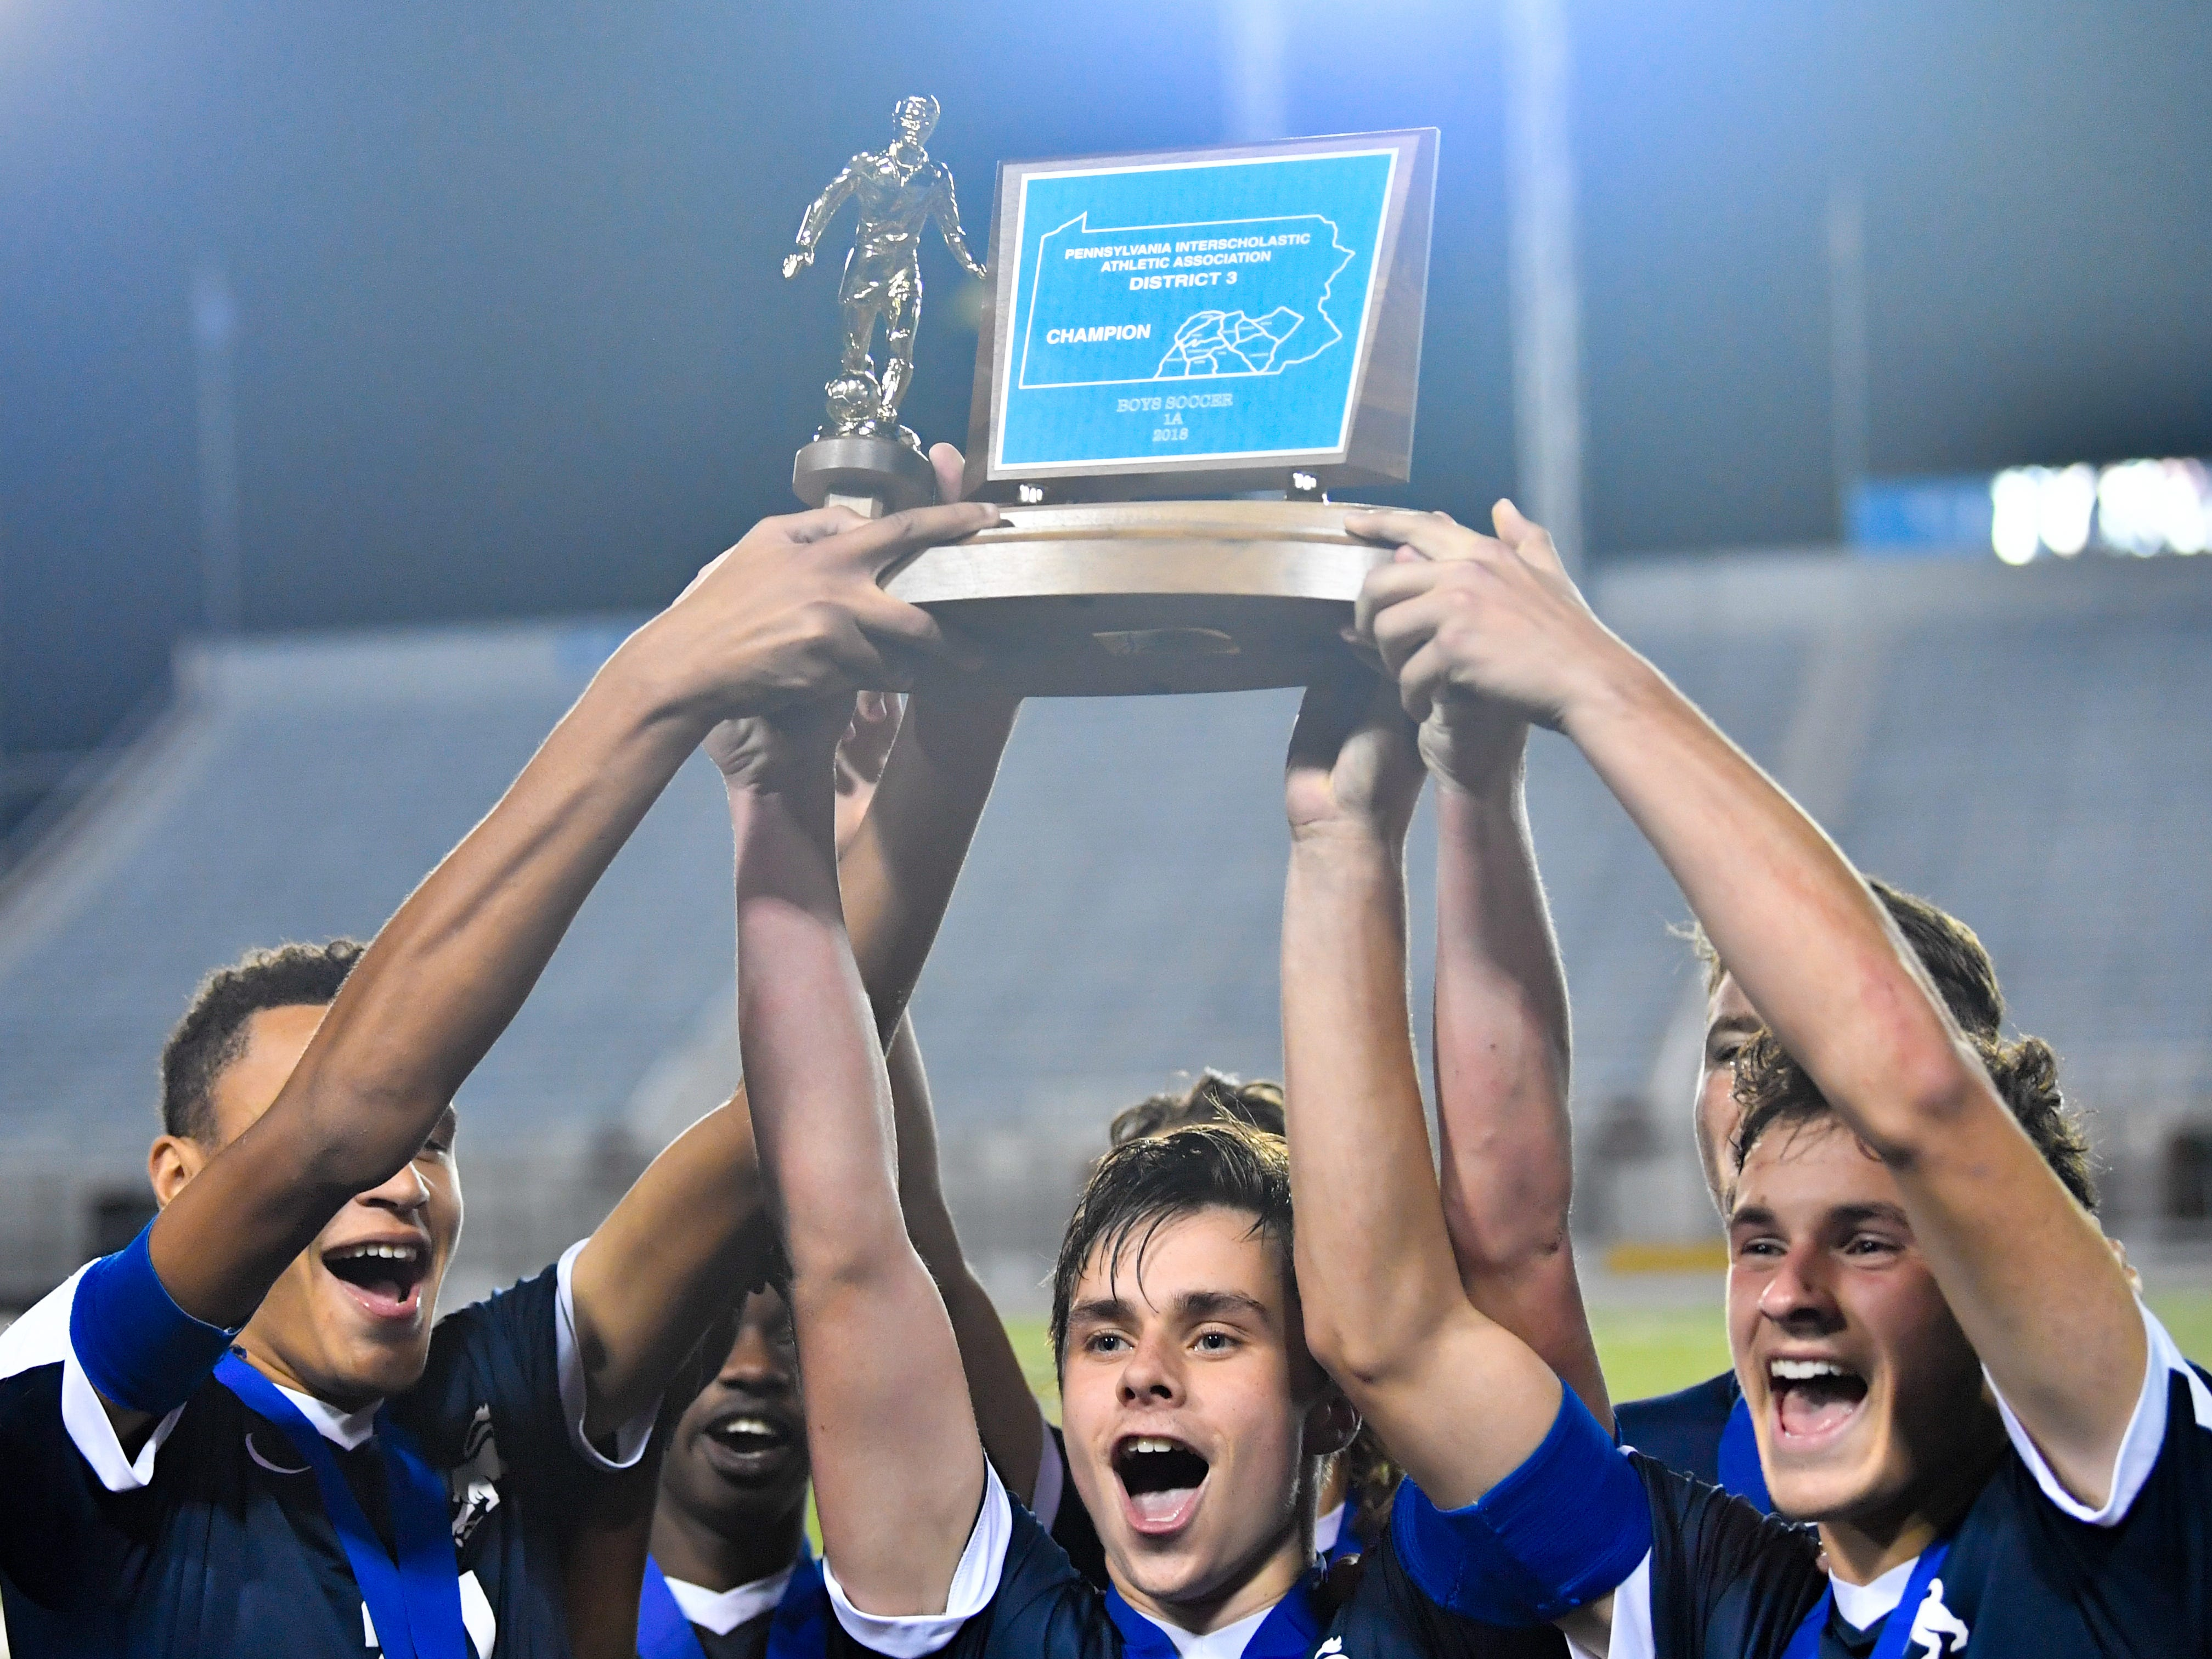 Camp Hill holds the District 3 Class 1A boys' soccer trophy up high at Hersheypark Stadium, October 31, 2018. The Lions beat the Fighting Irish 2-0.